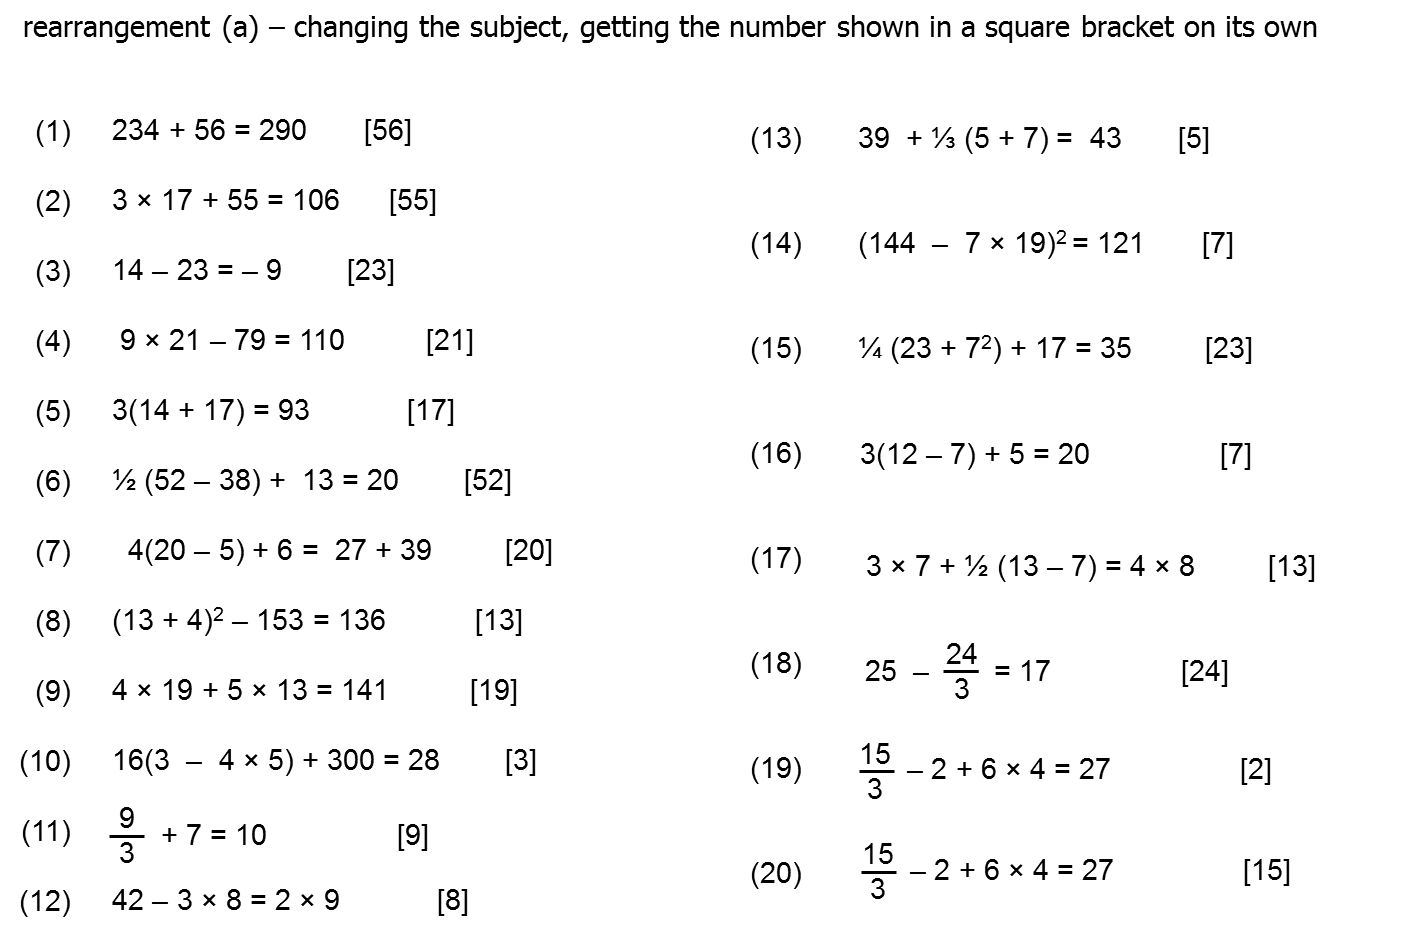 Easy Piecewise Functions Worksheet